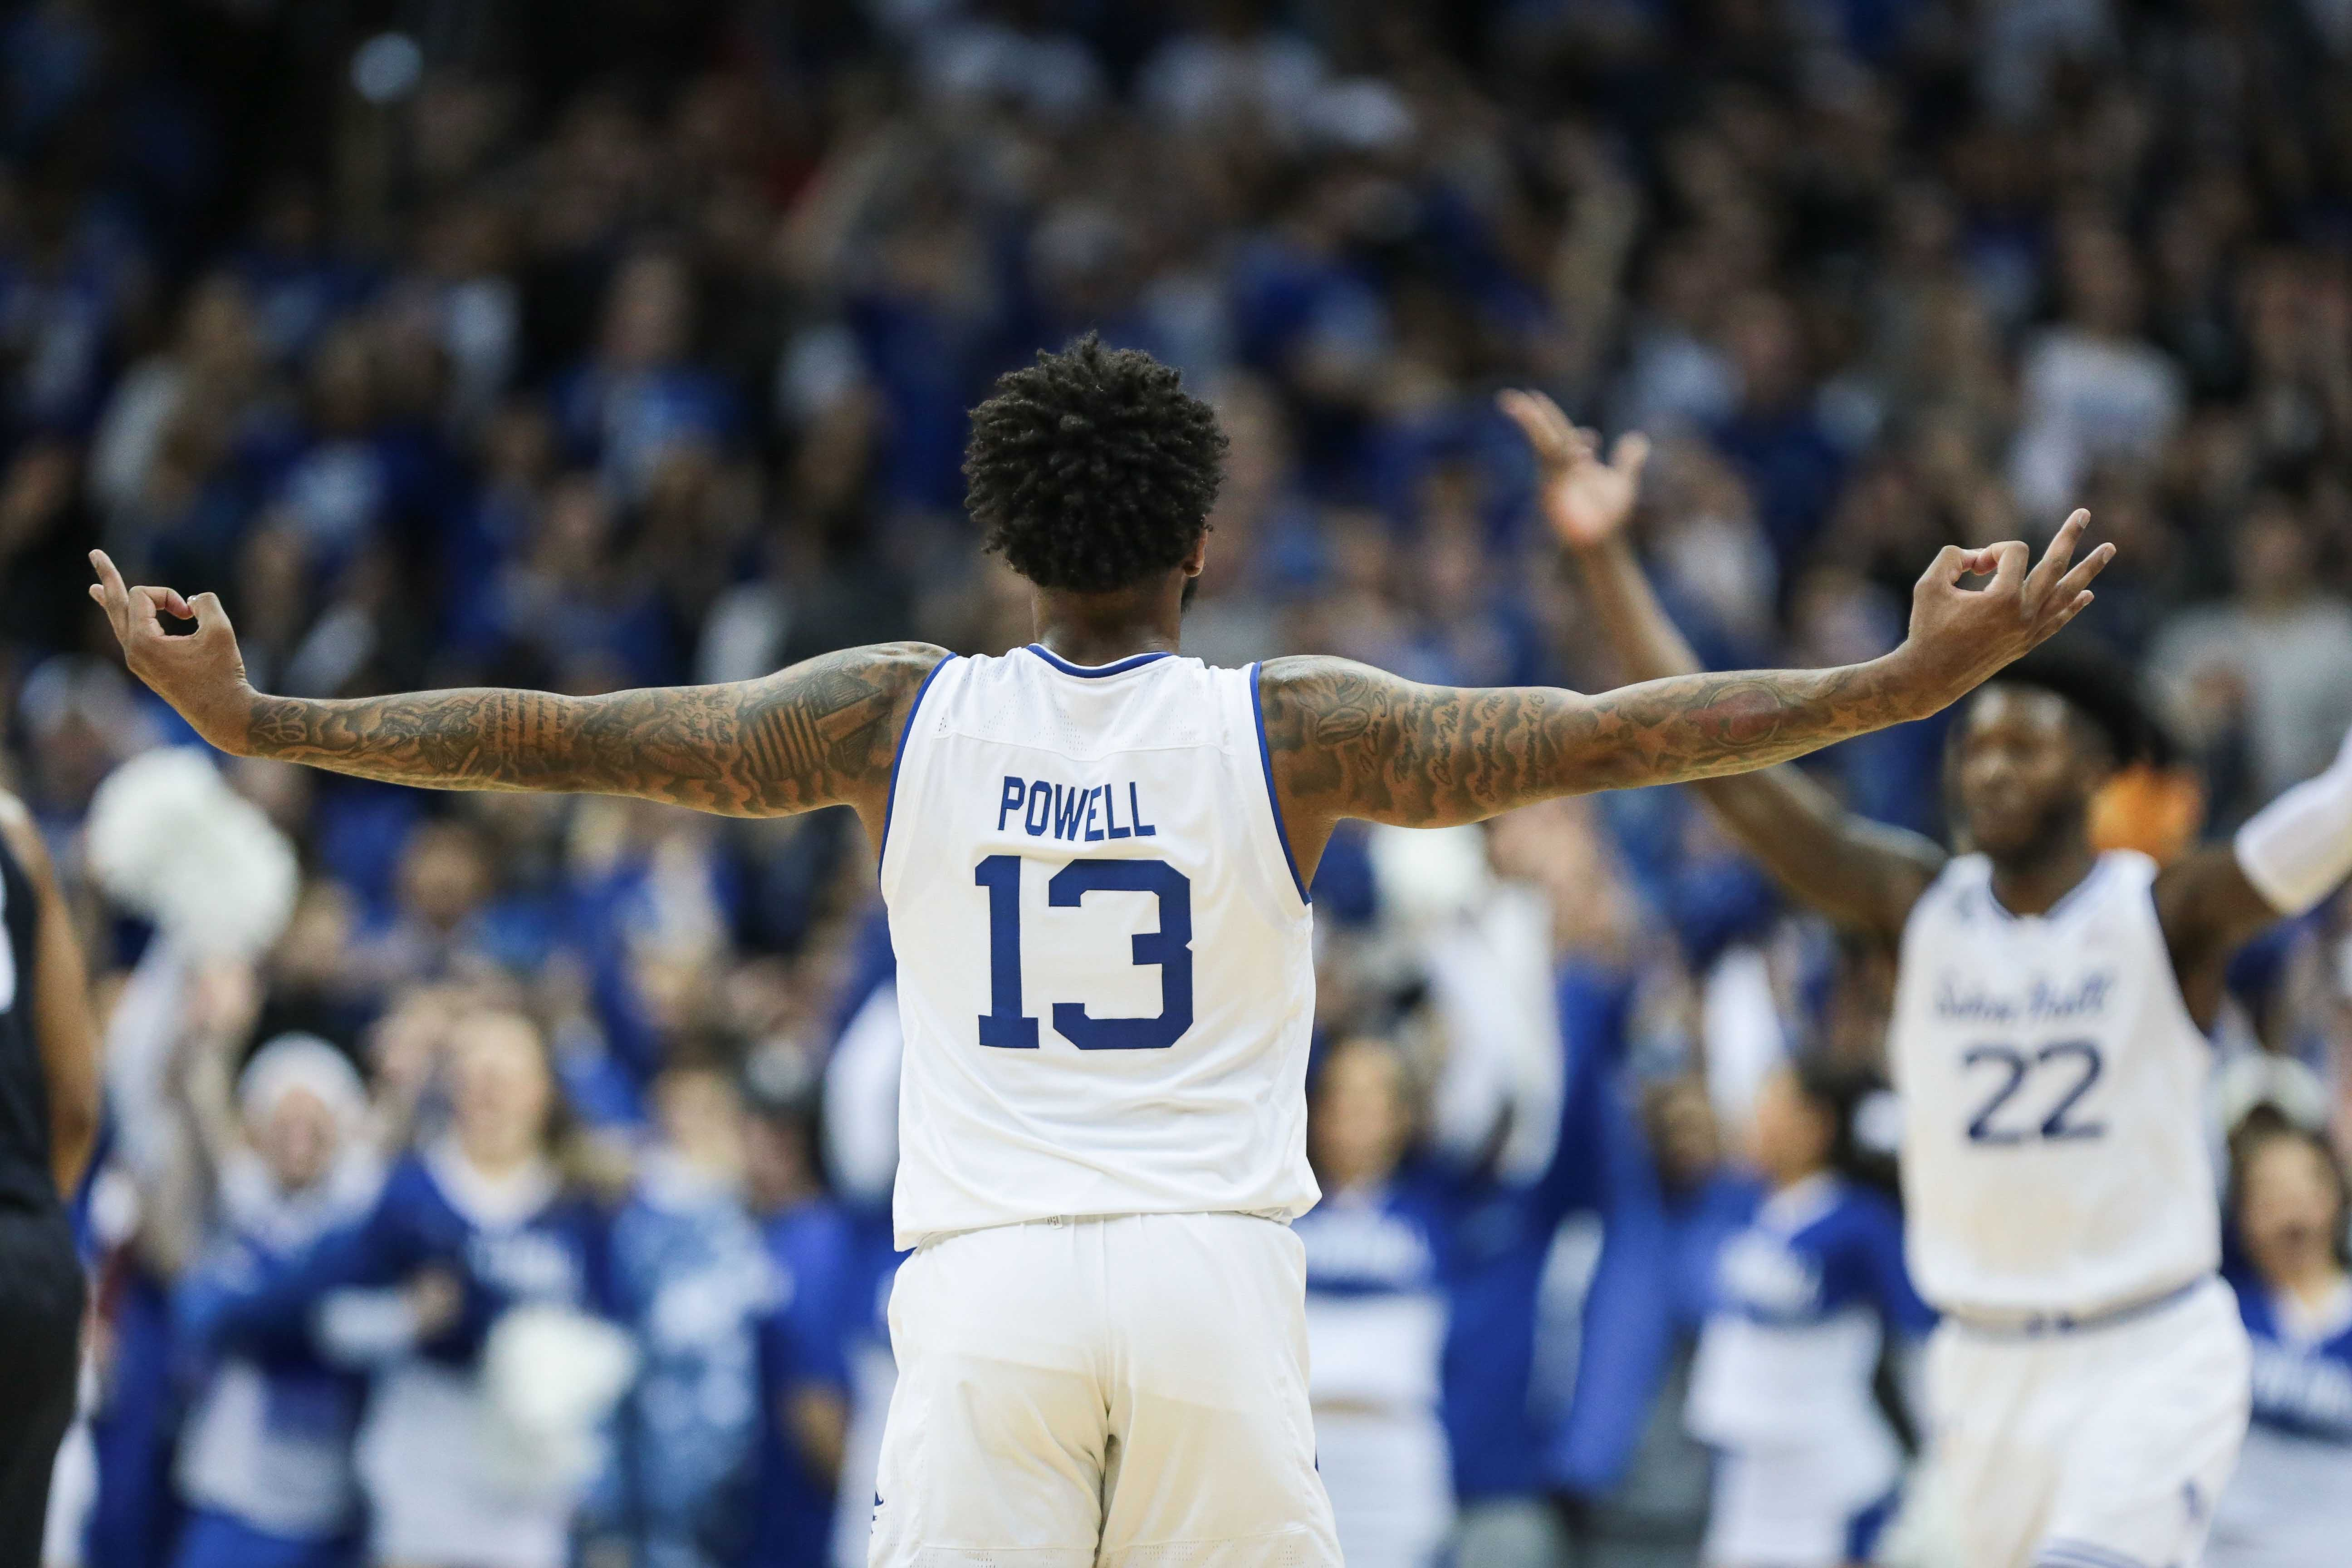 5cca6a29d3f ... 2019 Seton Hall basketball  Myles Powell earns honorable mention AP  All-America honors. Northjersey - 12 14 PM ET April 02